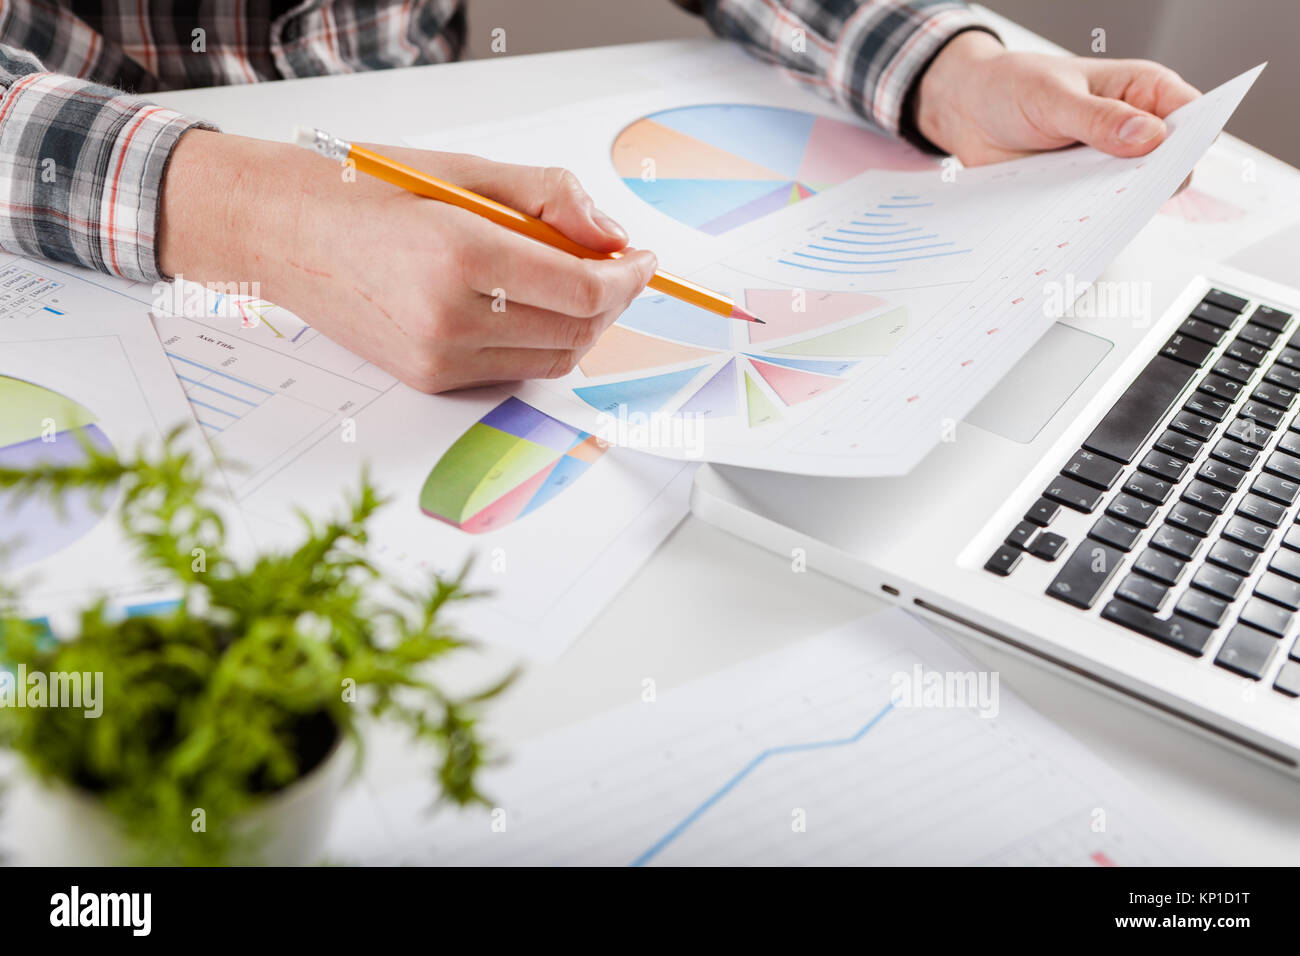 Businessman holding a pen is working with graph documents. Stock market chart and finger pointing on tablet in office. - Stock Image